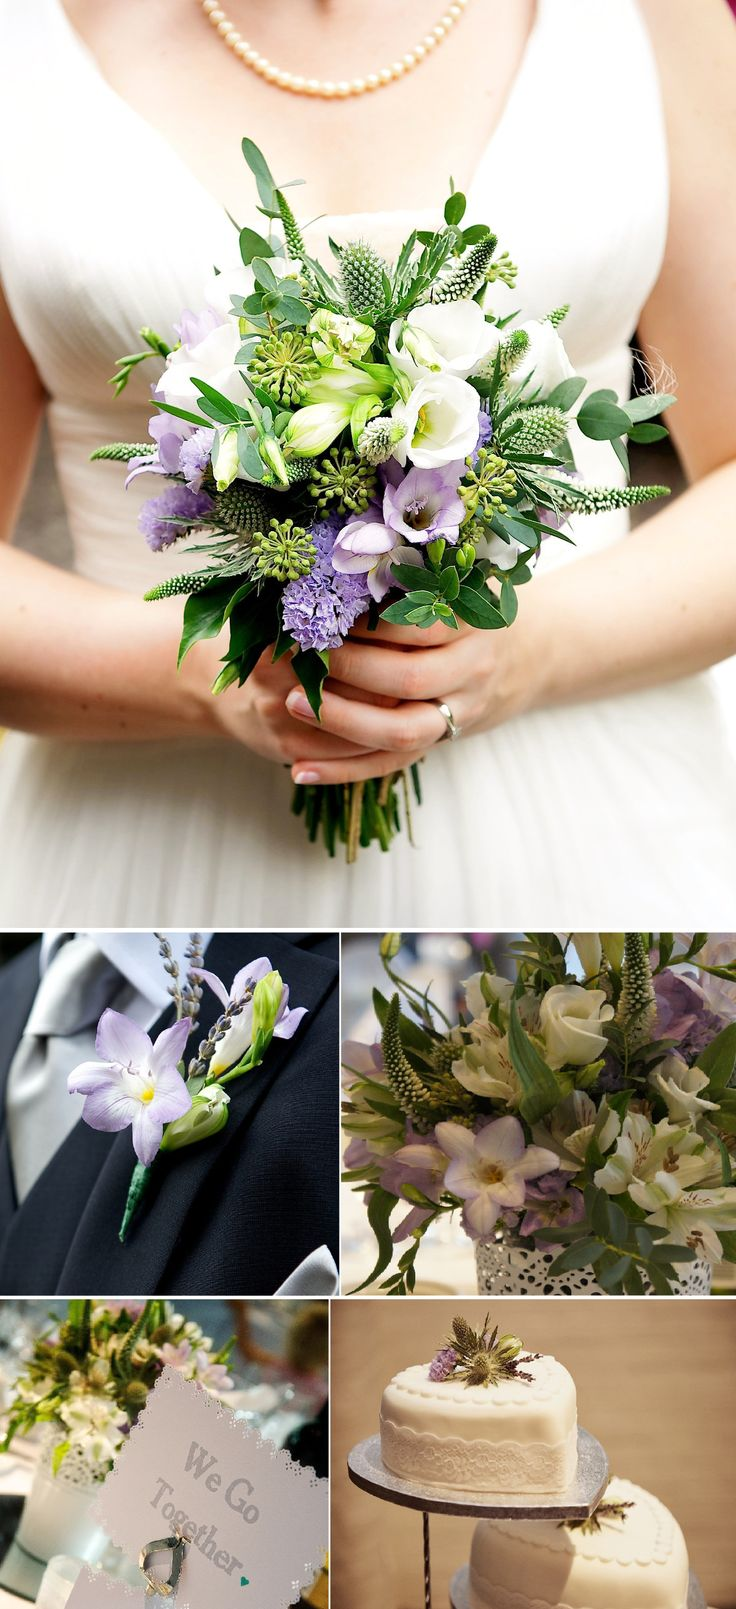 Florissimo, Shropshire - Flowers for weddings, events and businesses | Get the Florissimo Wedding Flowers Guide for more wedding flowers inspiration, as well as information on prices, at http://flowersbyflorissimo.co.uk/weddings/  | Naturalistic and organically-styled gorgeously-scented pale purple freesia, white lisianthus, veronica, alstroemeria, statice, trachelium, eryngium thistle and berried ivy. Photo: Graeme Braidwood